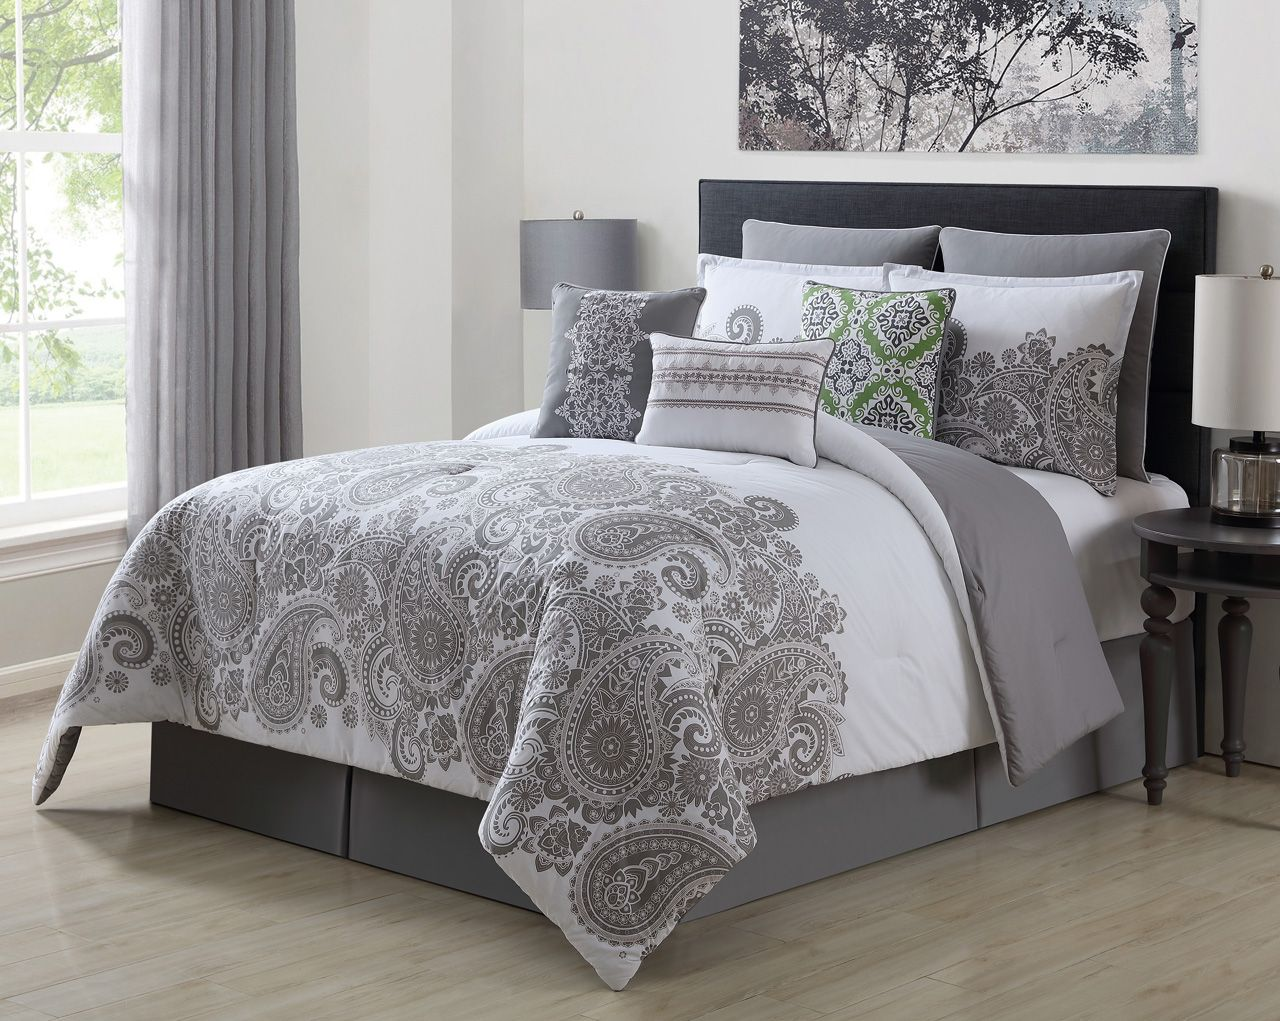 13 Piece Mona Gray White 100 Cotton Bed In A Bag Set Queen 4 Jpg 1 280 1 021 Pixels Comforter Sets Grey And White Comforter Grey And White Bedding